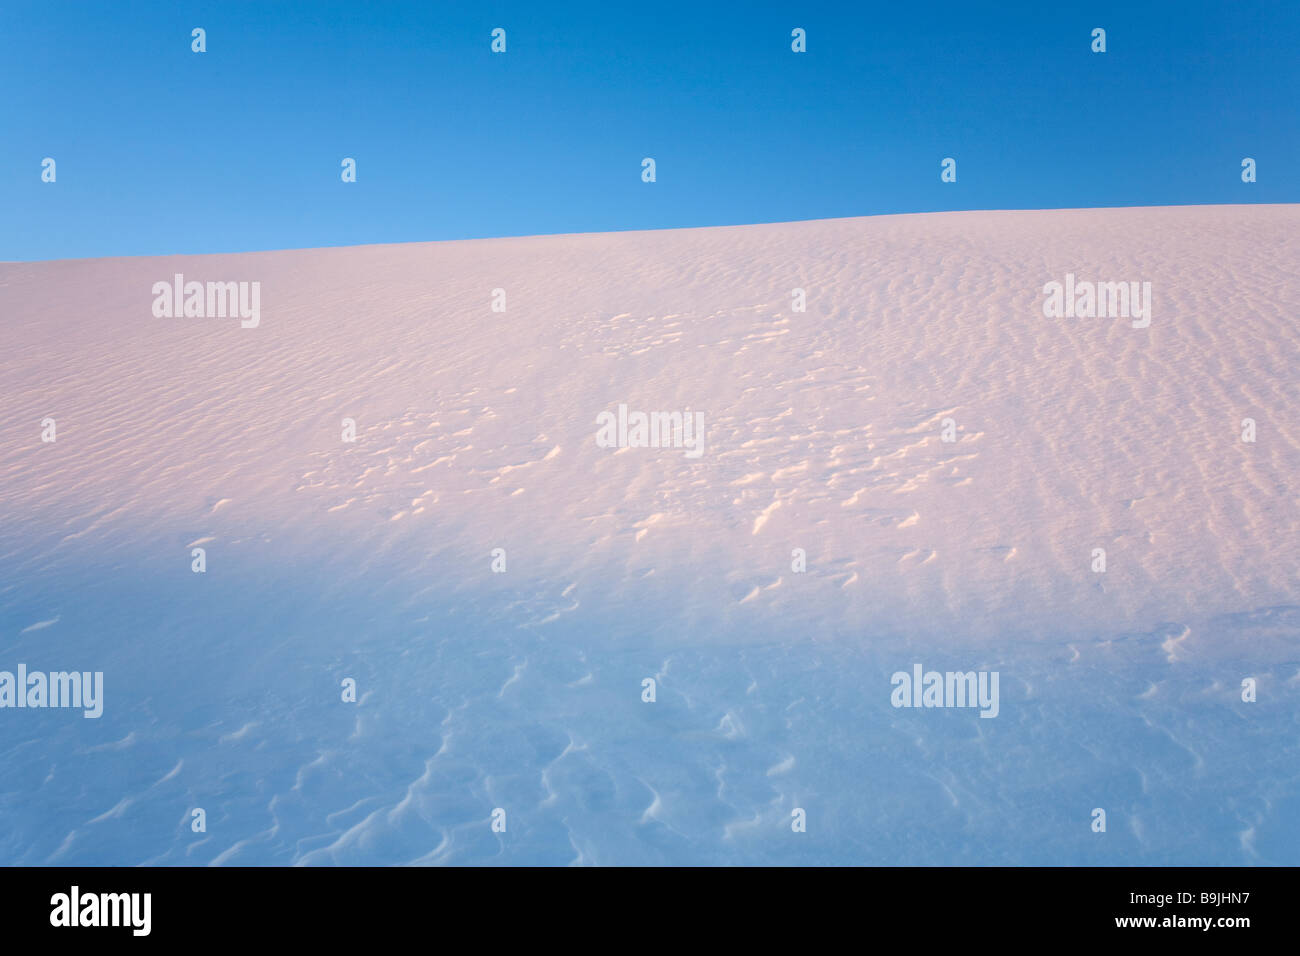 Snowy hill slope - Stock Image